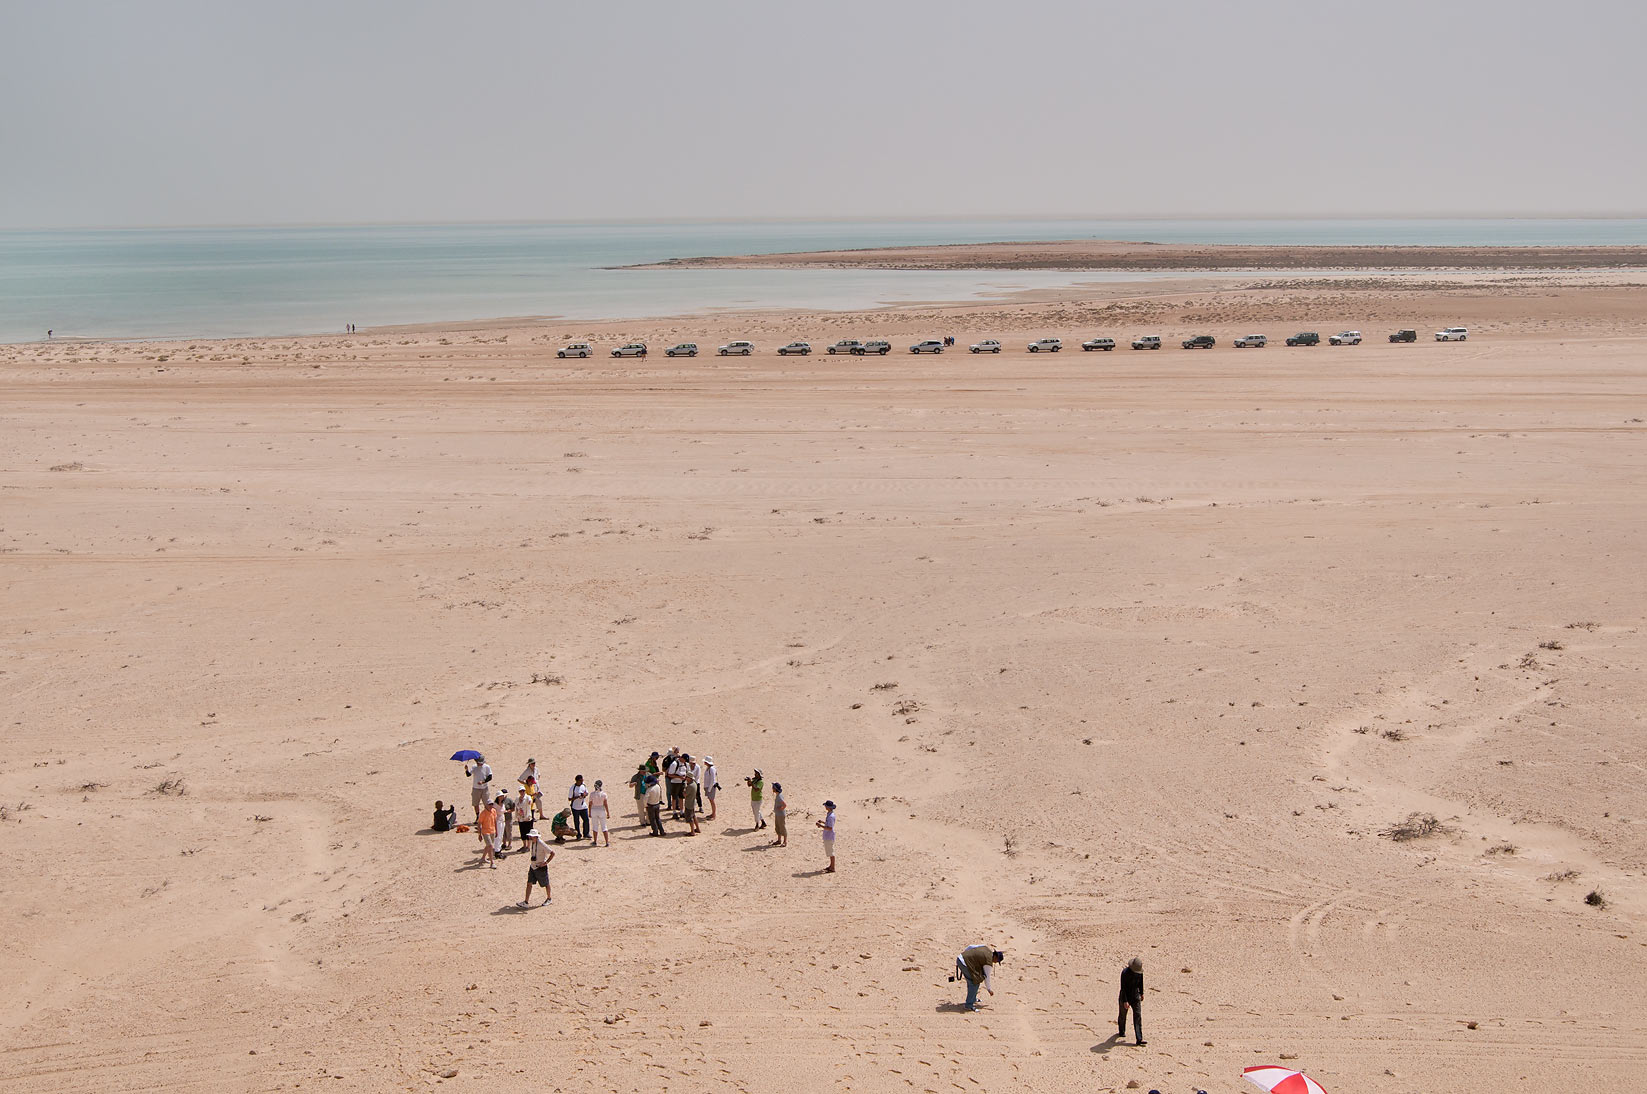 Ras Abrouq peninsula in west central coastal area, north from Zekreet. Qatar